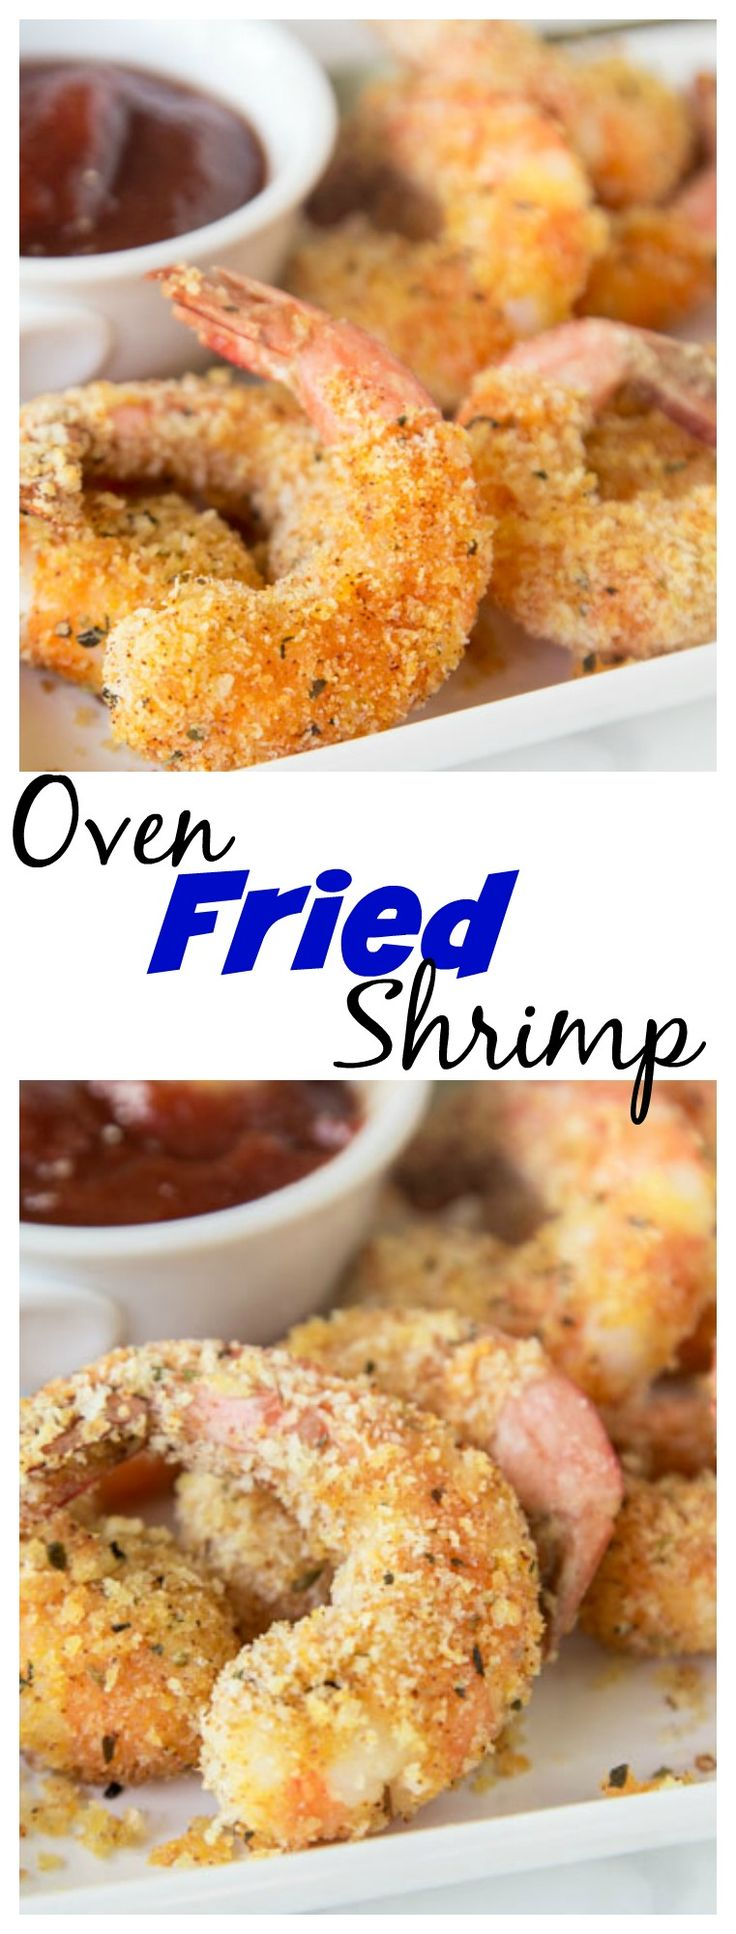 Oven Fried Shrimp – make super crispy shrimp that is baked, not fried, so it is actually good for you!